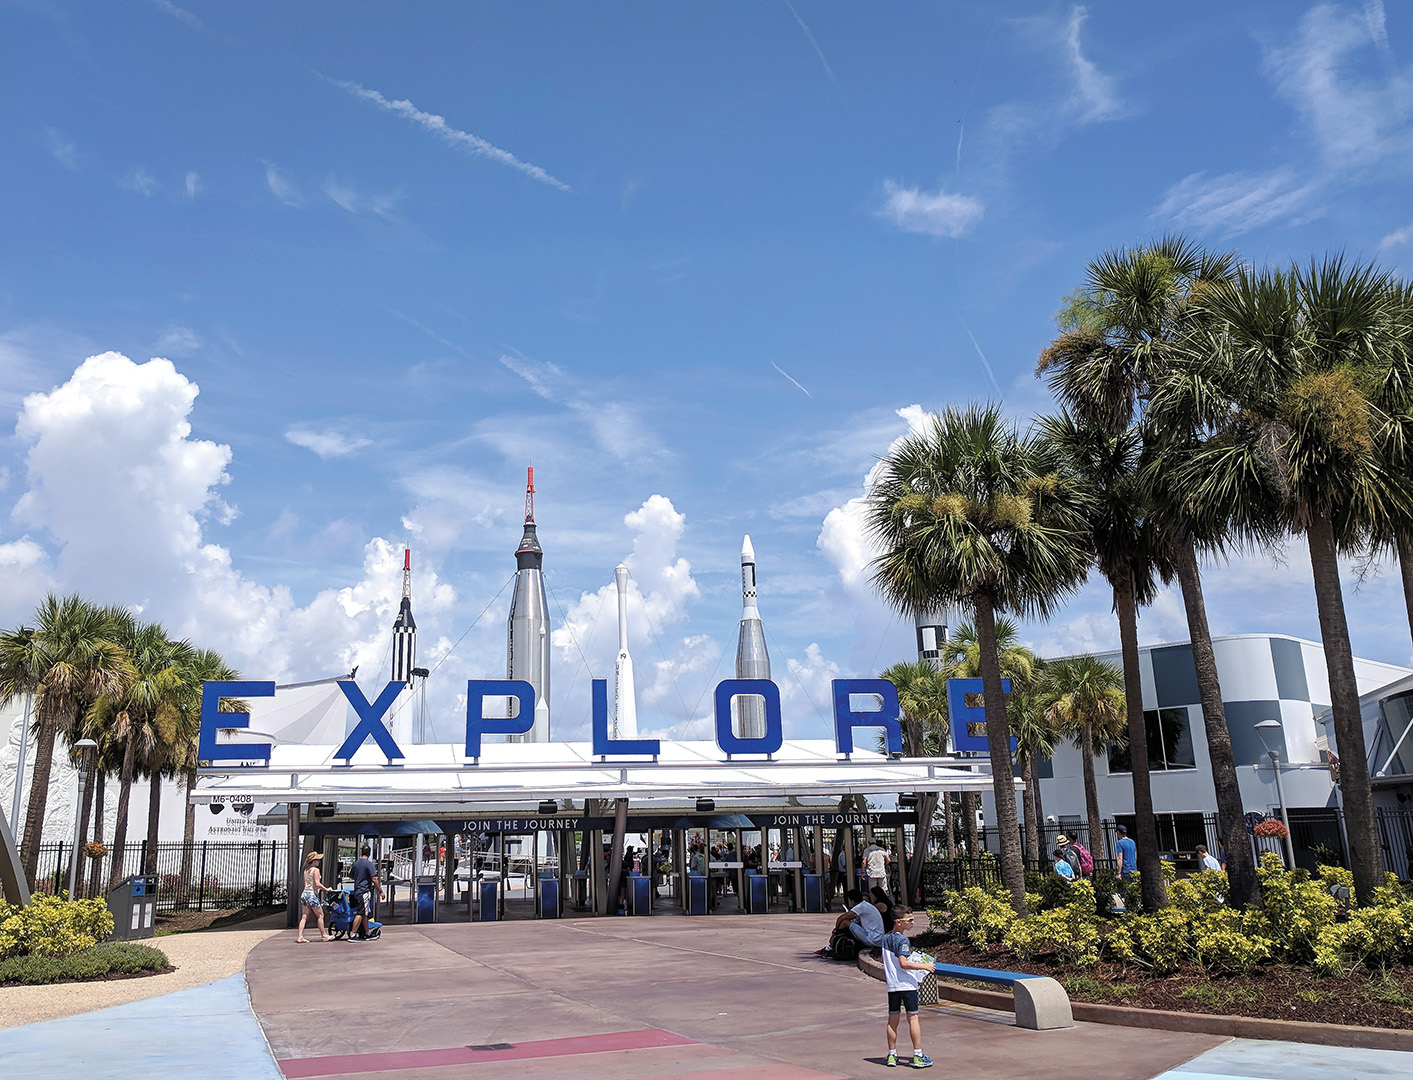 Have a Blast - Push the limits with a trip to Cape Canaveral